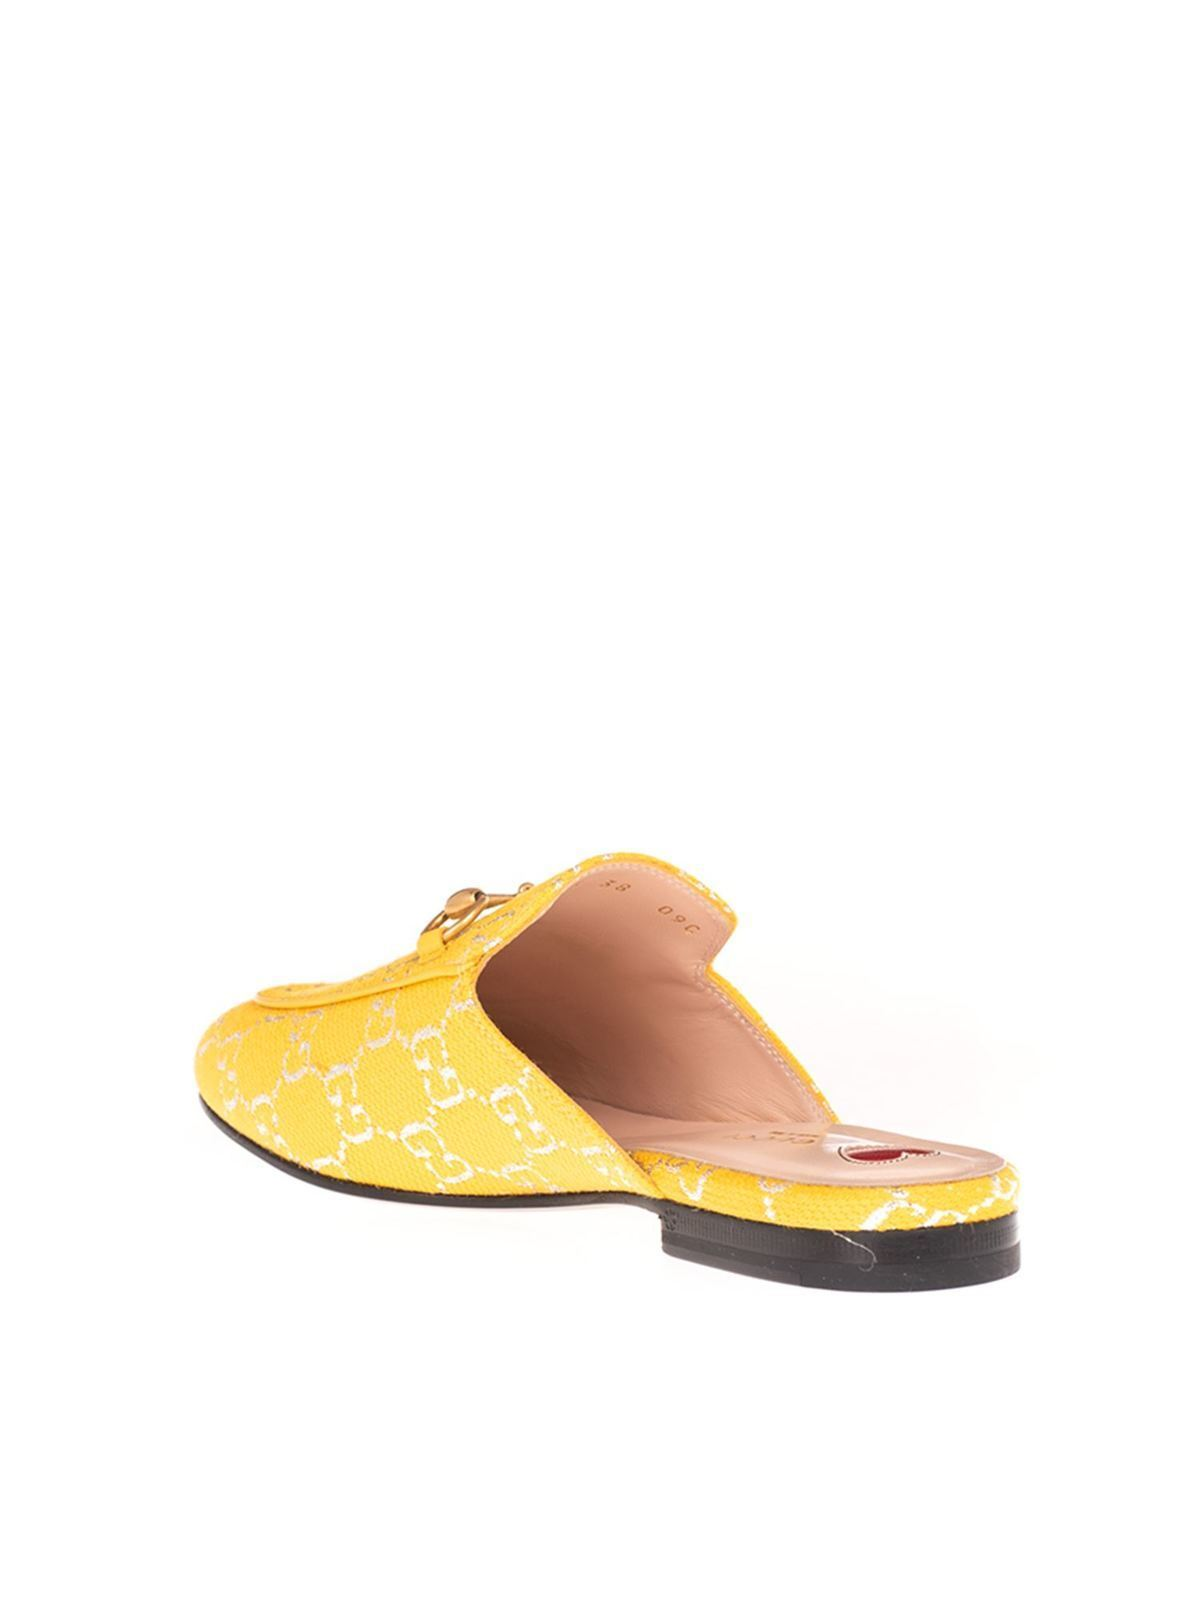 Gucci - Princetown slippers in yellow